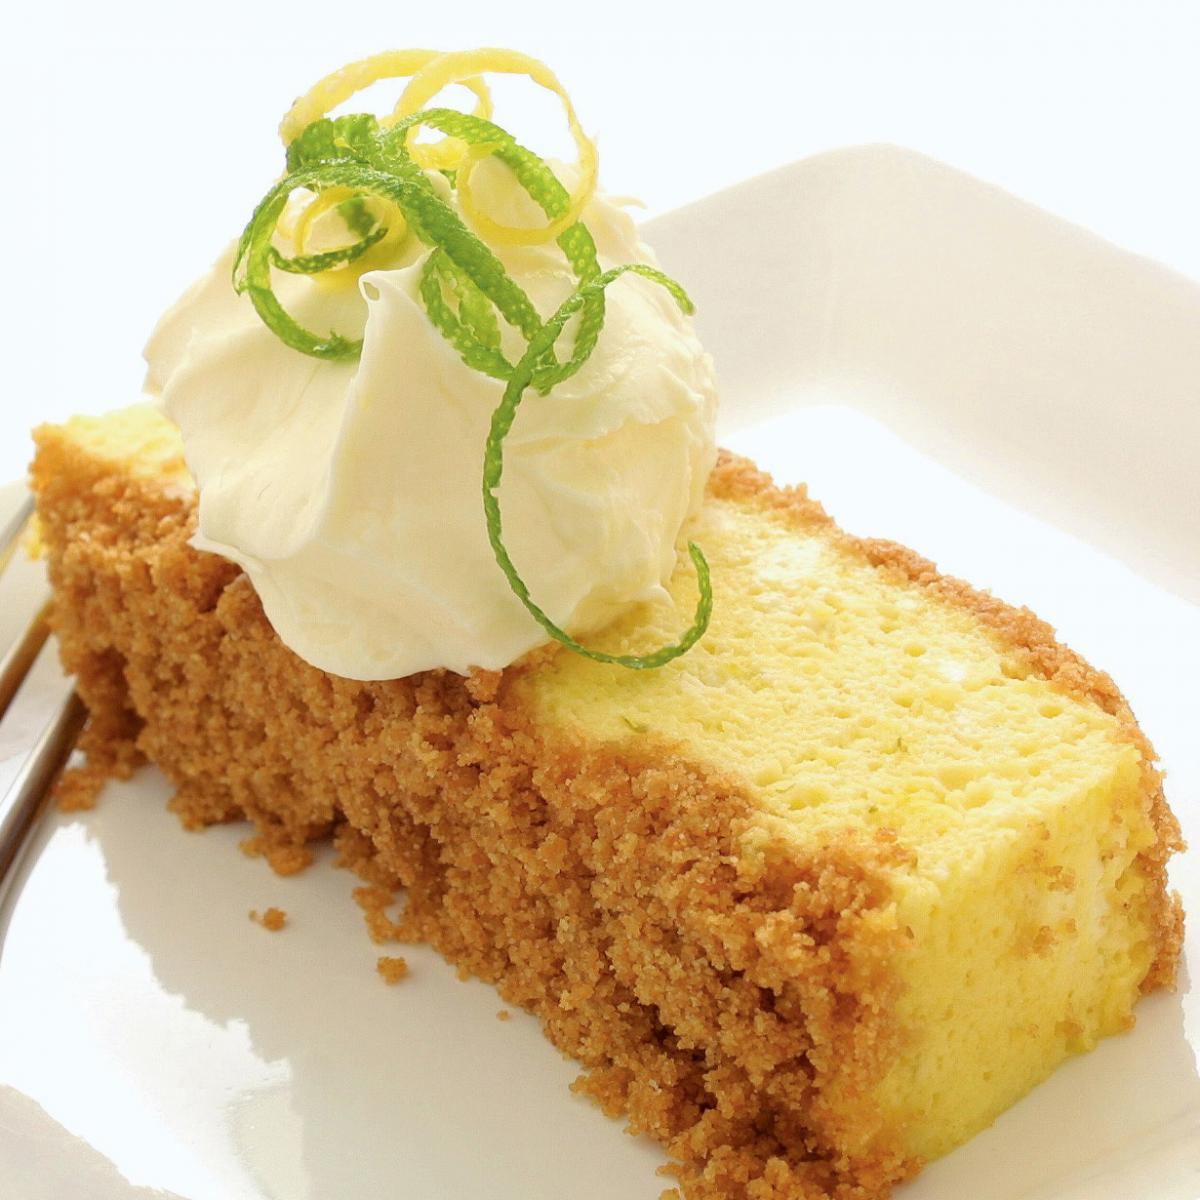 A picture of Delia's Lemon and Lime Refrigerator Cake recipe